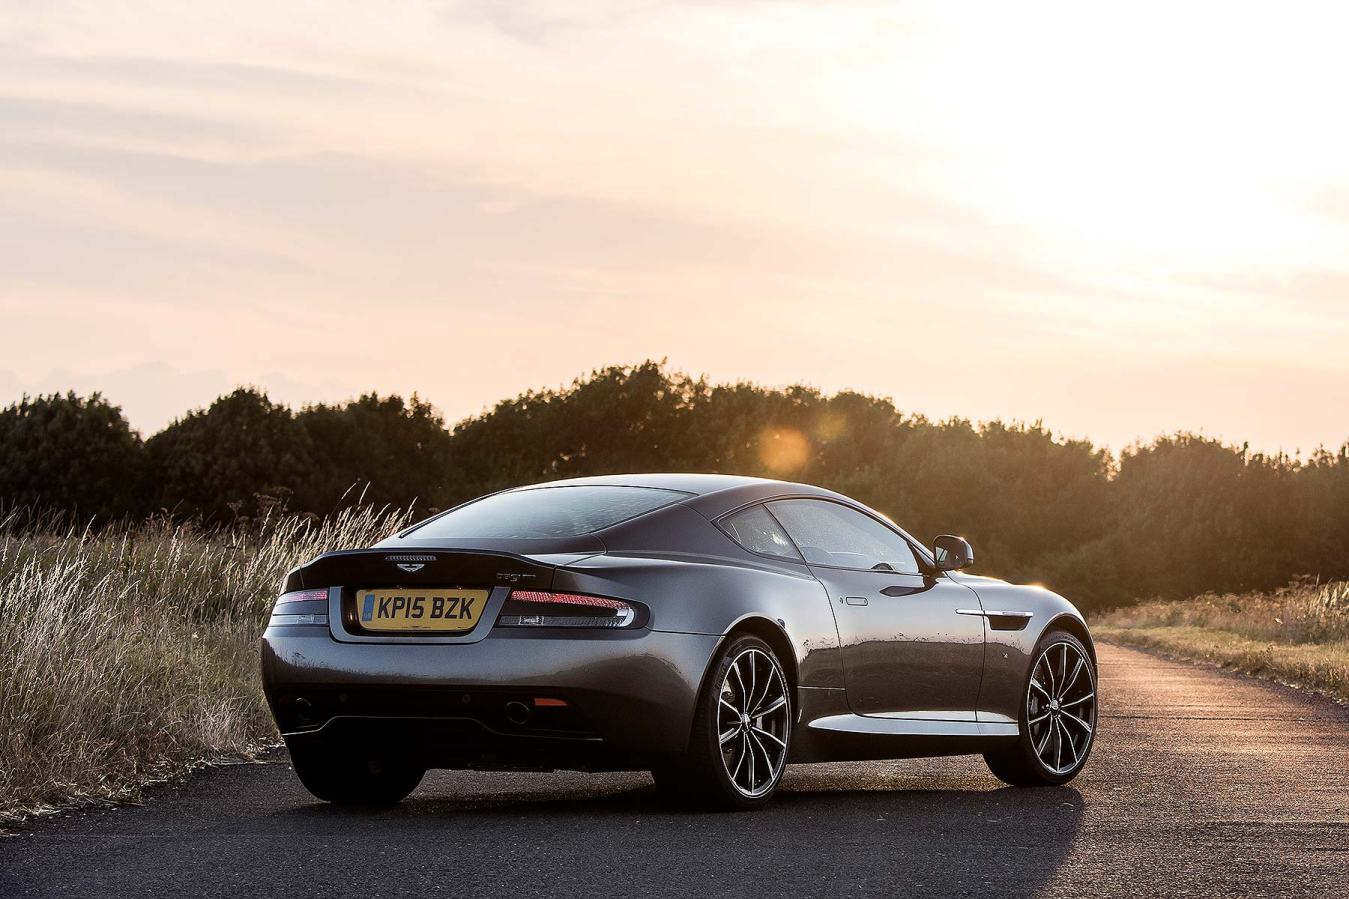 aston martin db9 gt review 2015 first drive motoring research. Black Bedroom Furniture Sets. Home Design Ideas